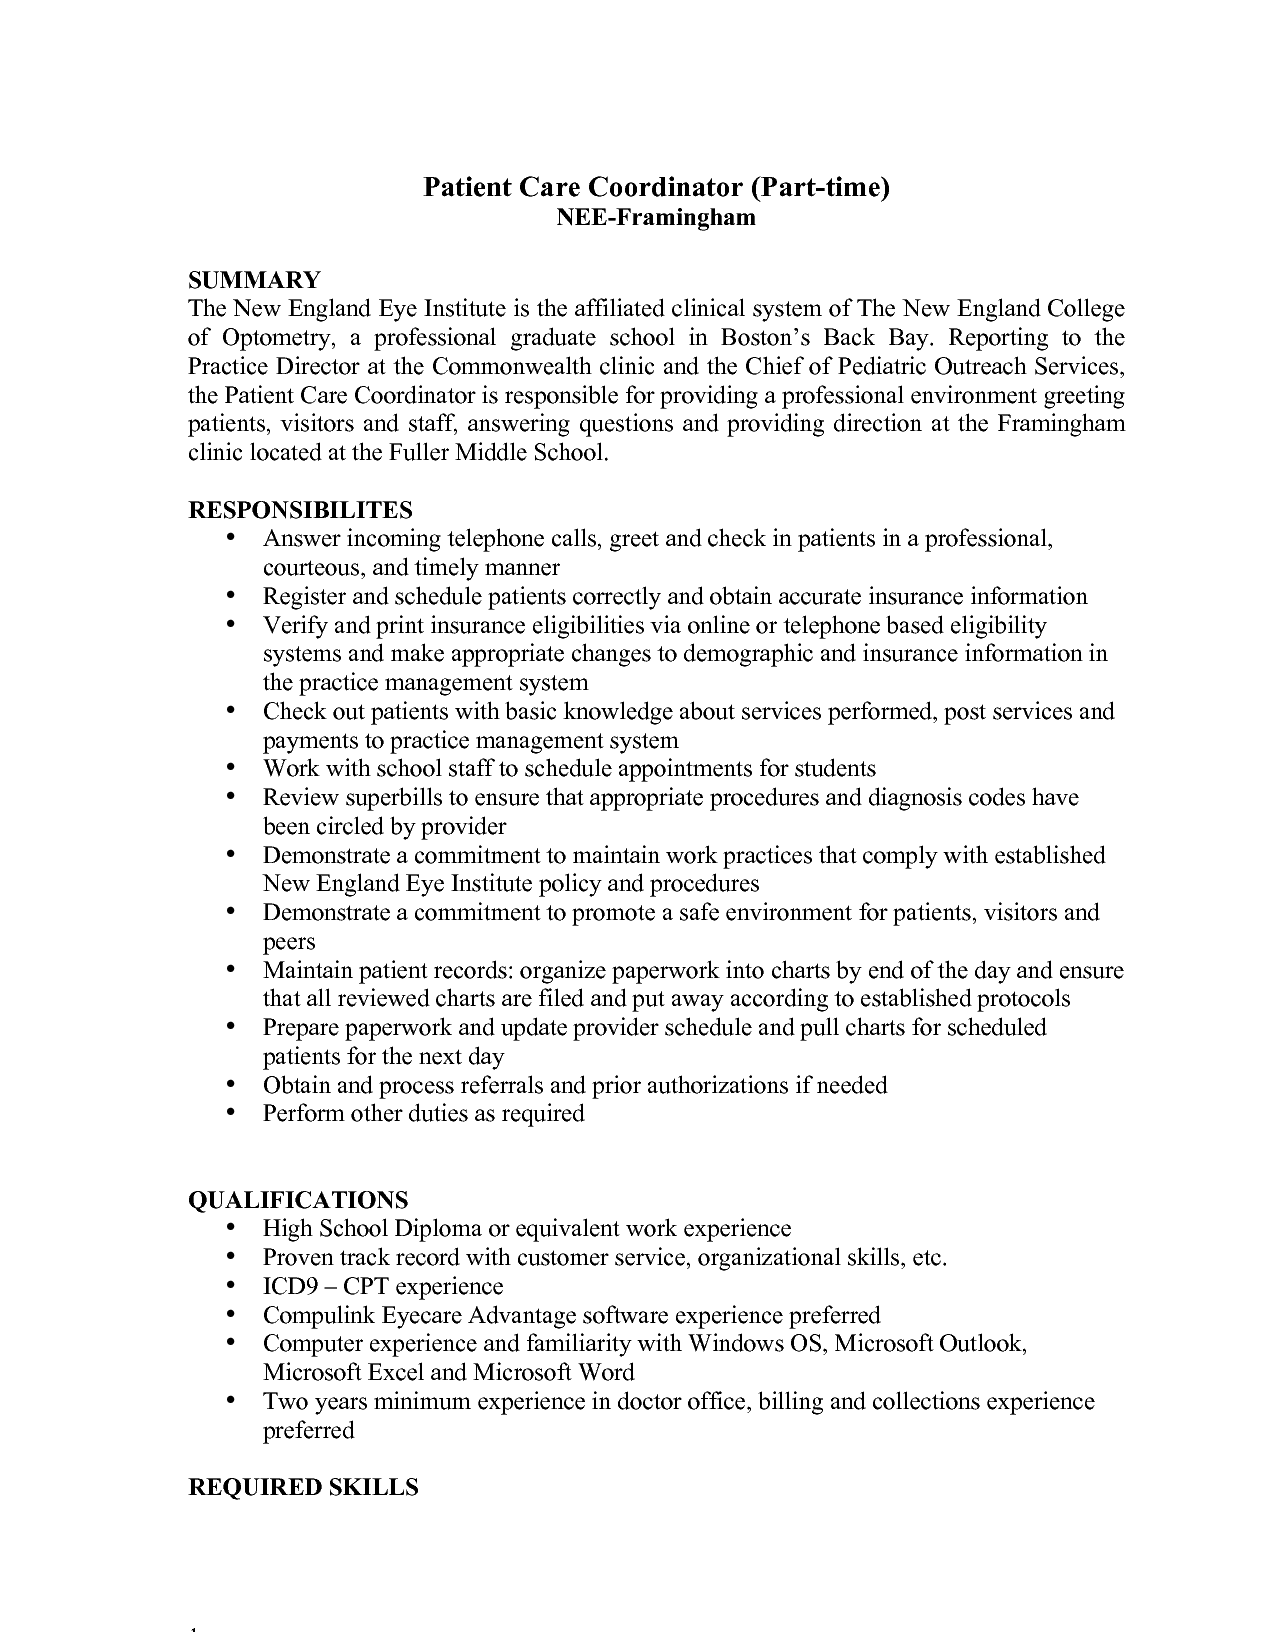 patient care coordinator resume summary and responsibilities